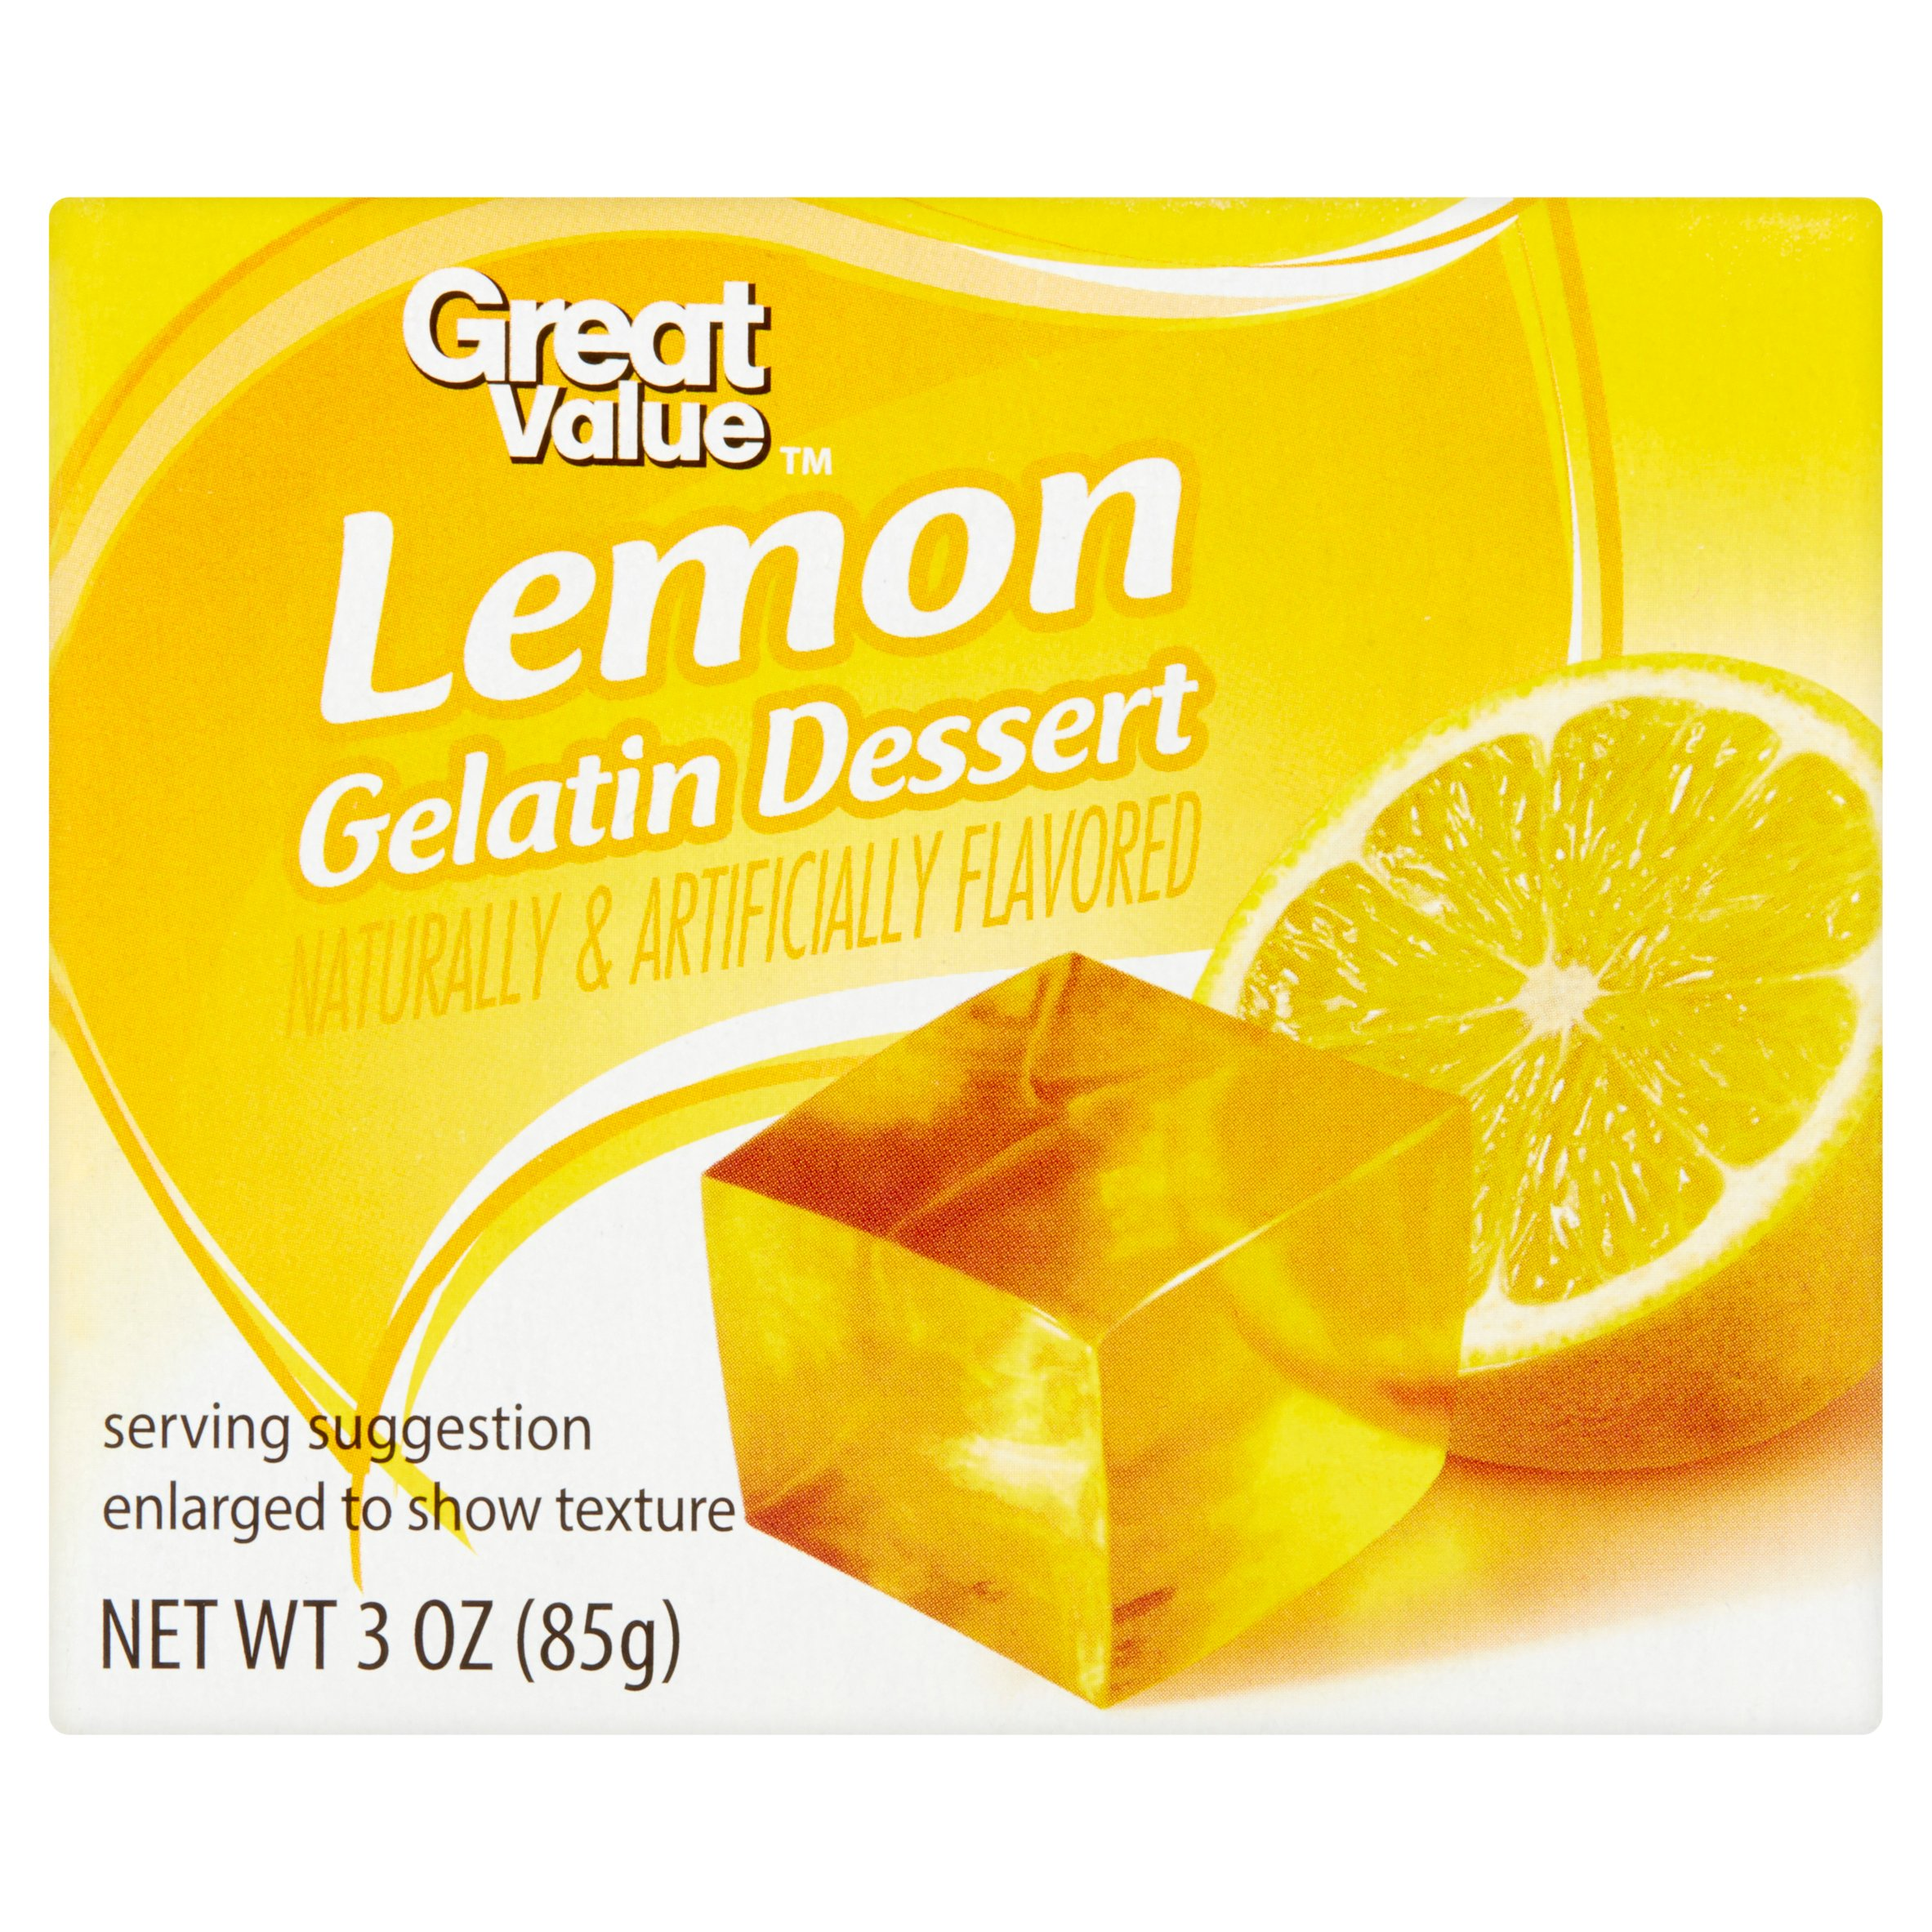 Great Value Lemon Gelatin Dessert, 3 oz by Wal-Mart Stores, Inc.